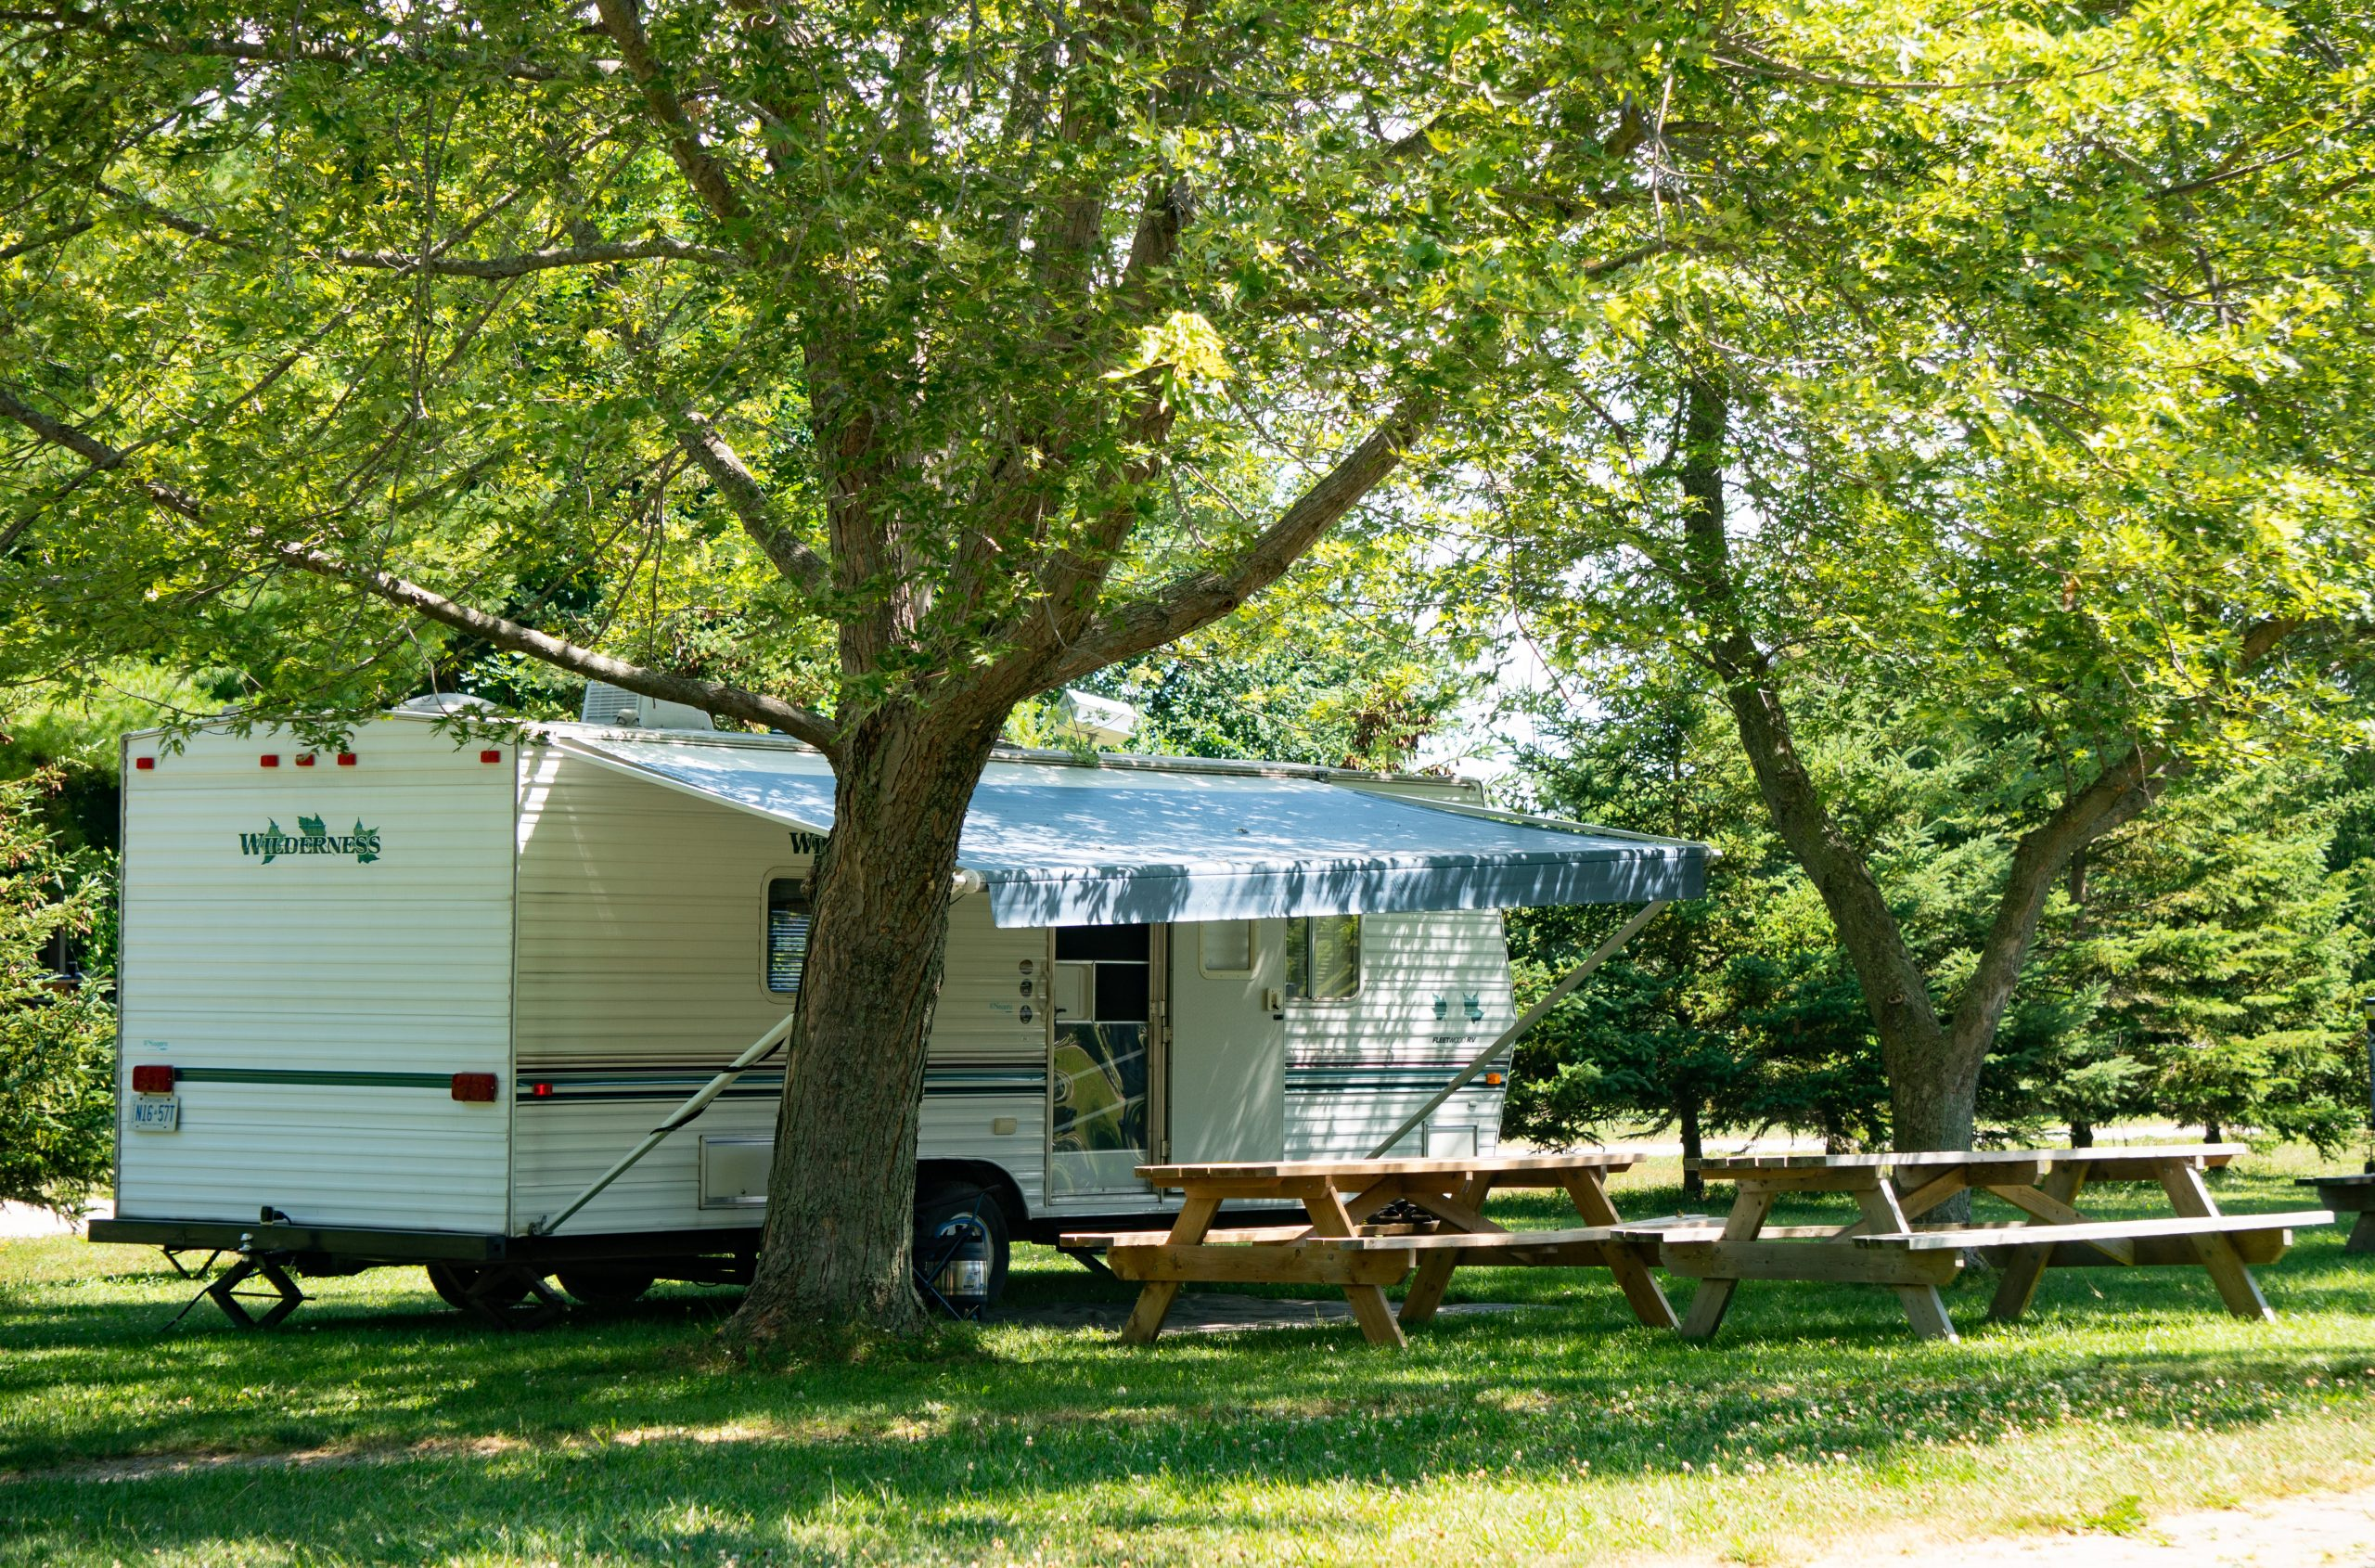 A camper trailer set up amongst trees on a grassy field with picnic tables in front.